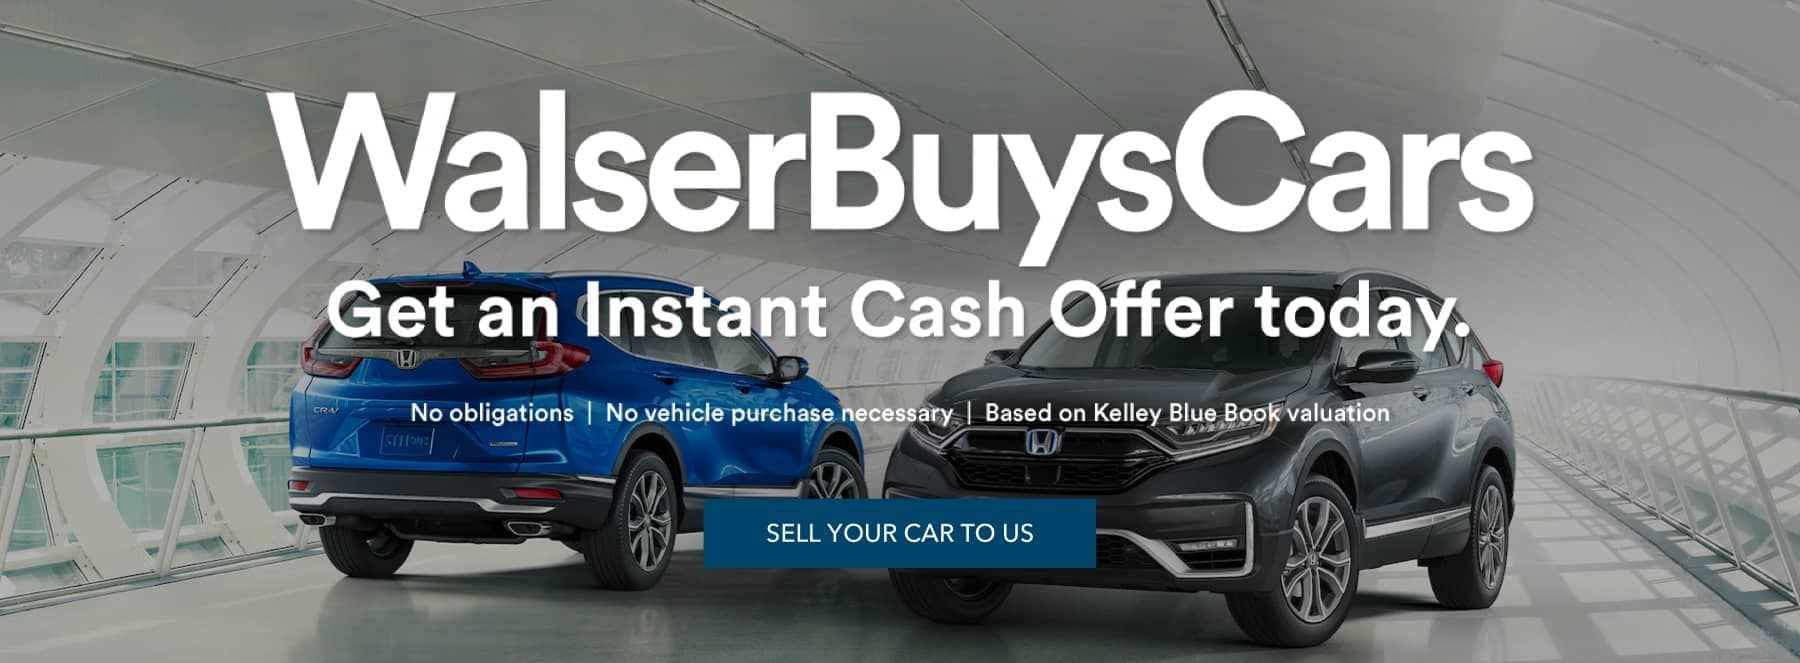 Walser Buys Cars